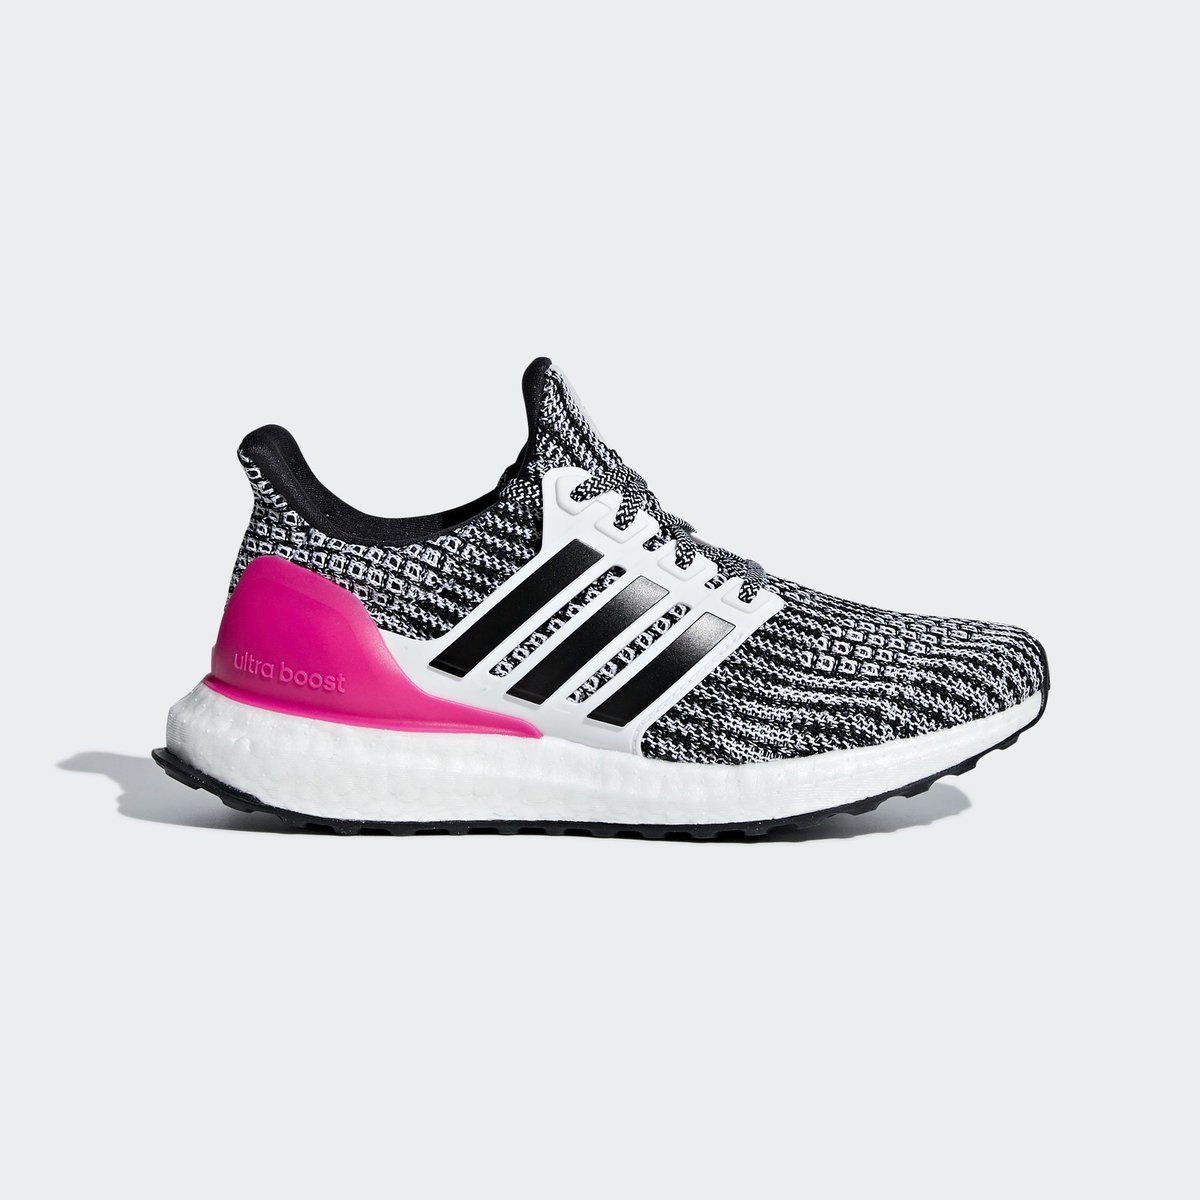 df0377045ffb7 adidas alerts on Twitter